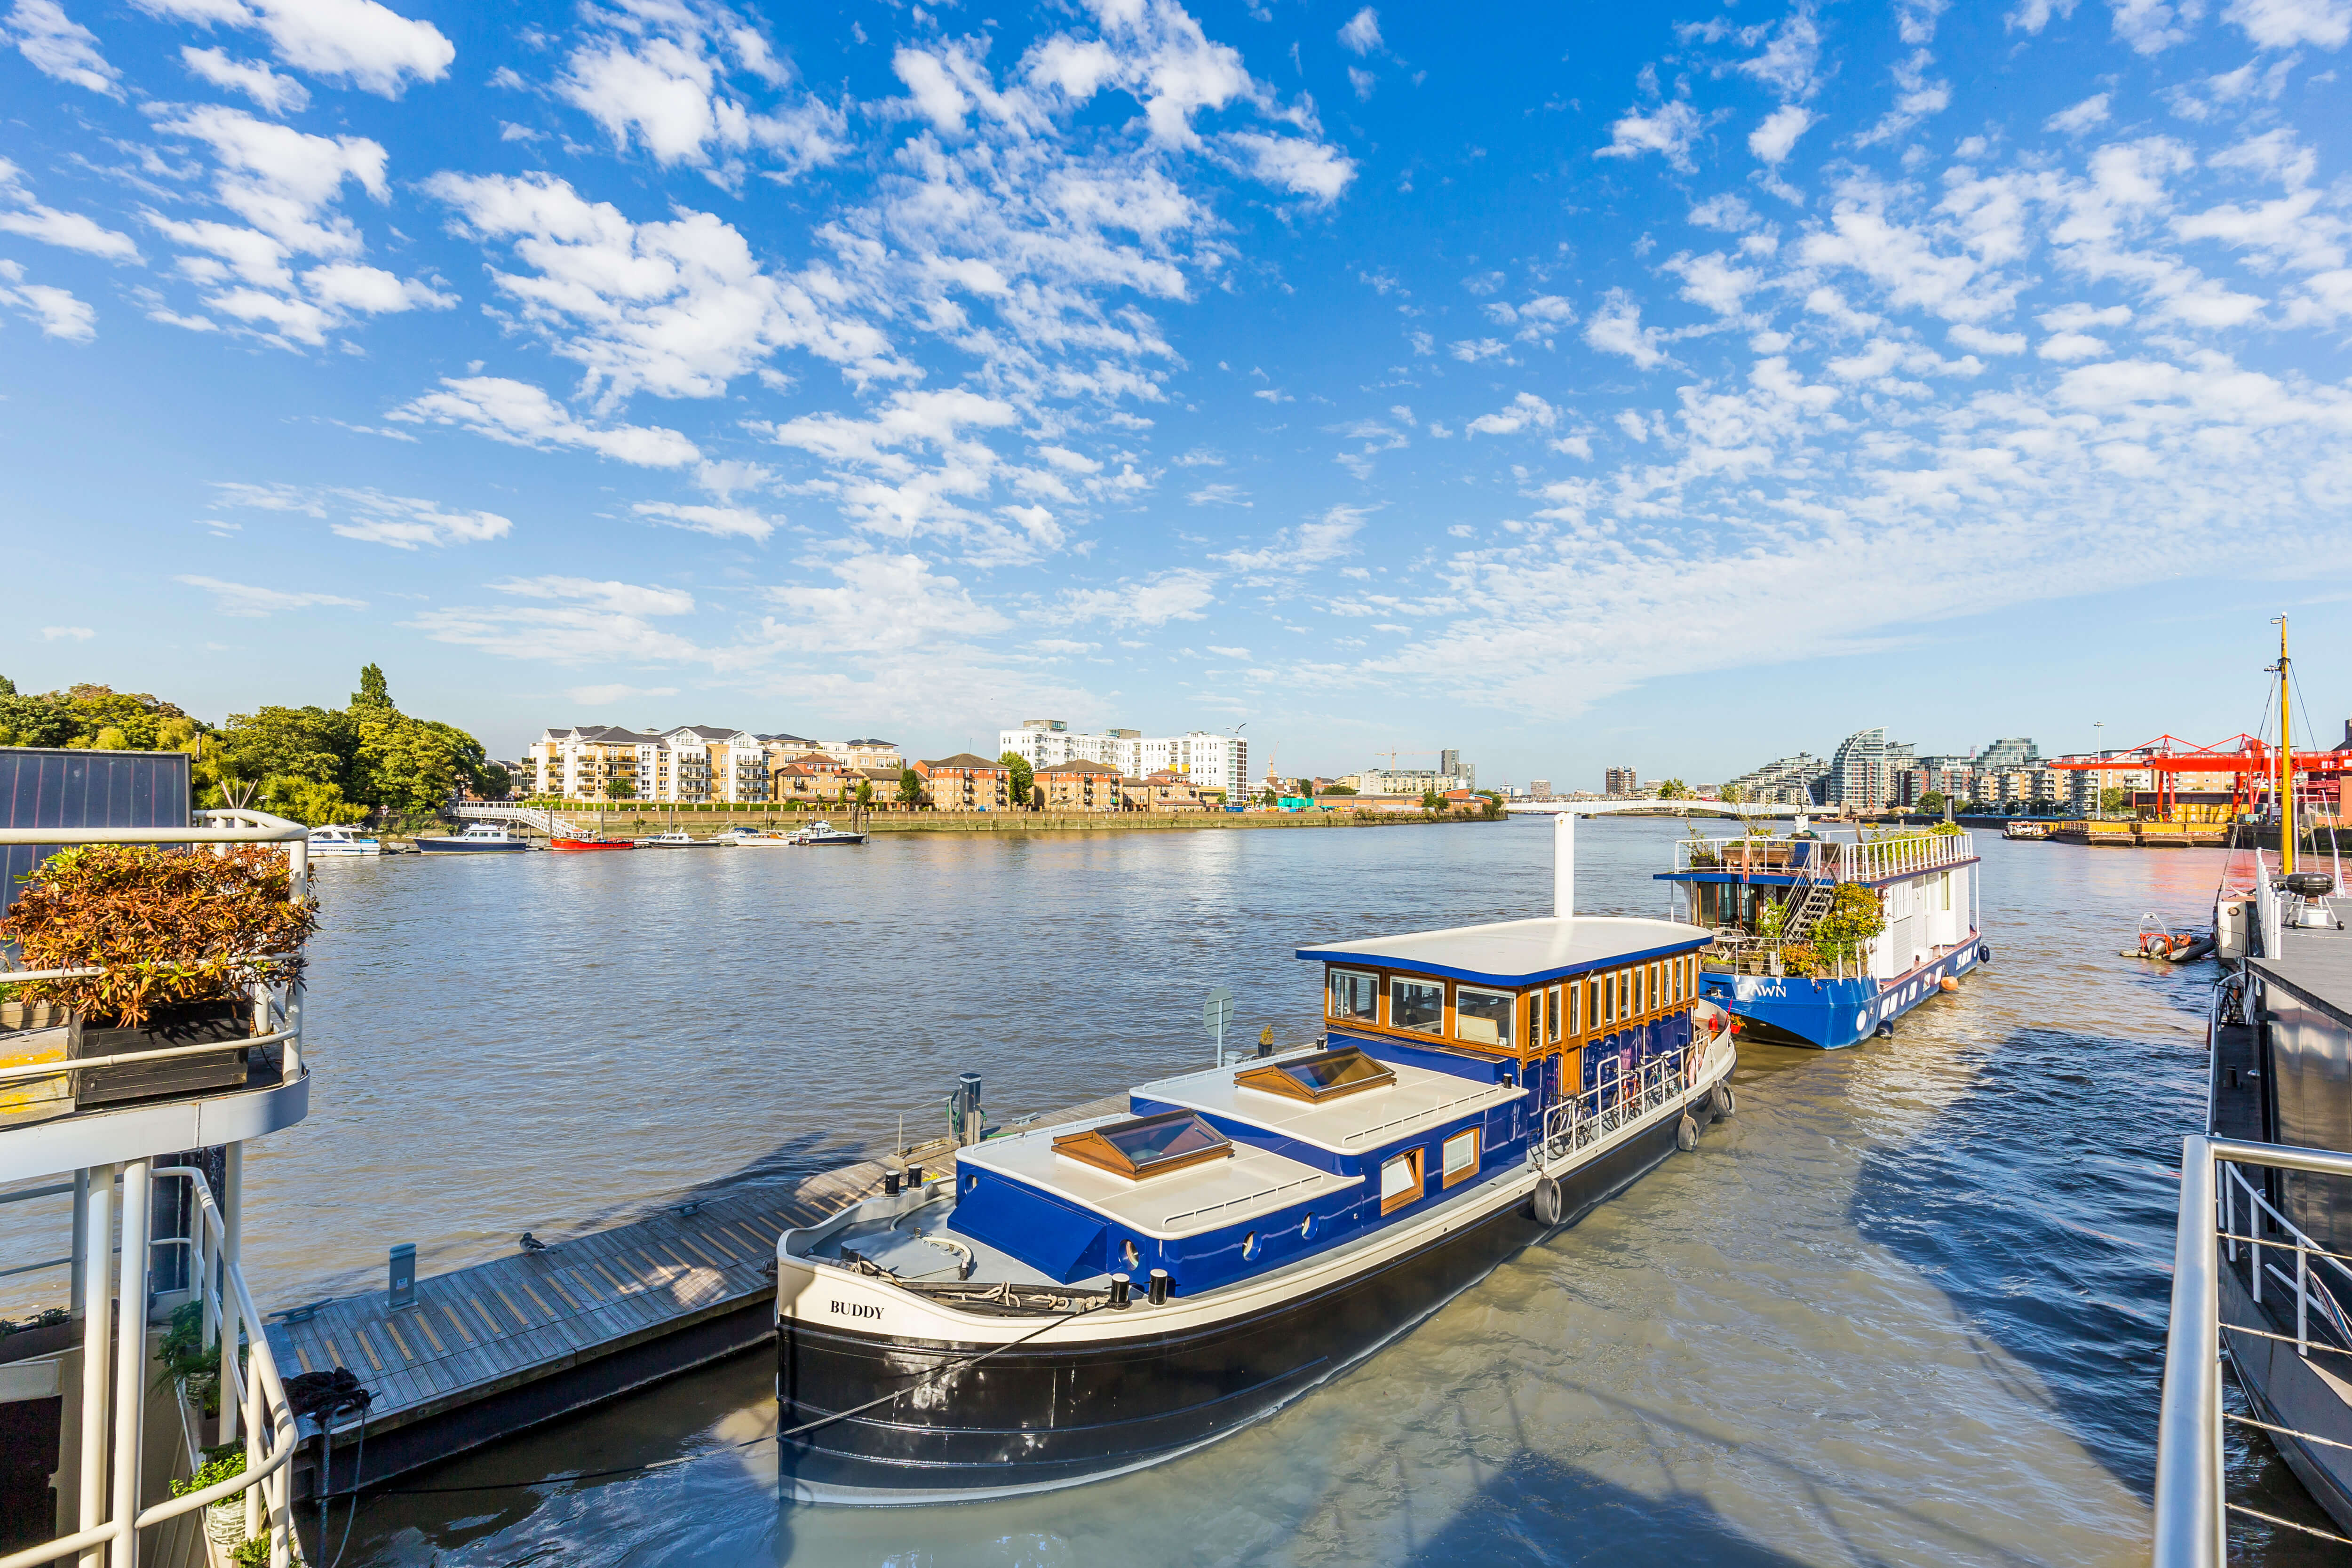 Property of the Week: Get moor for your money with this Wandsworth houseboat